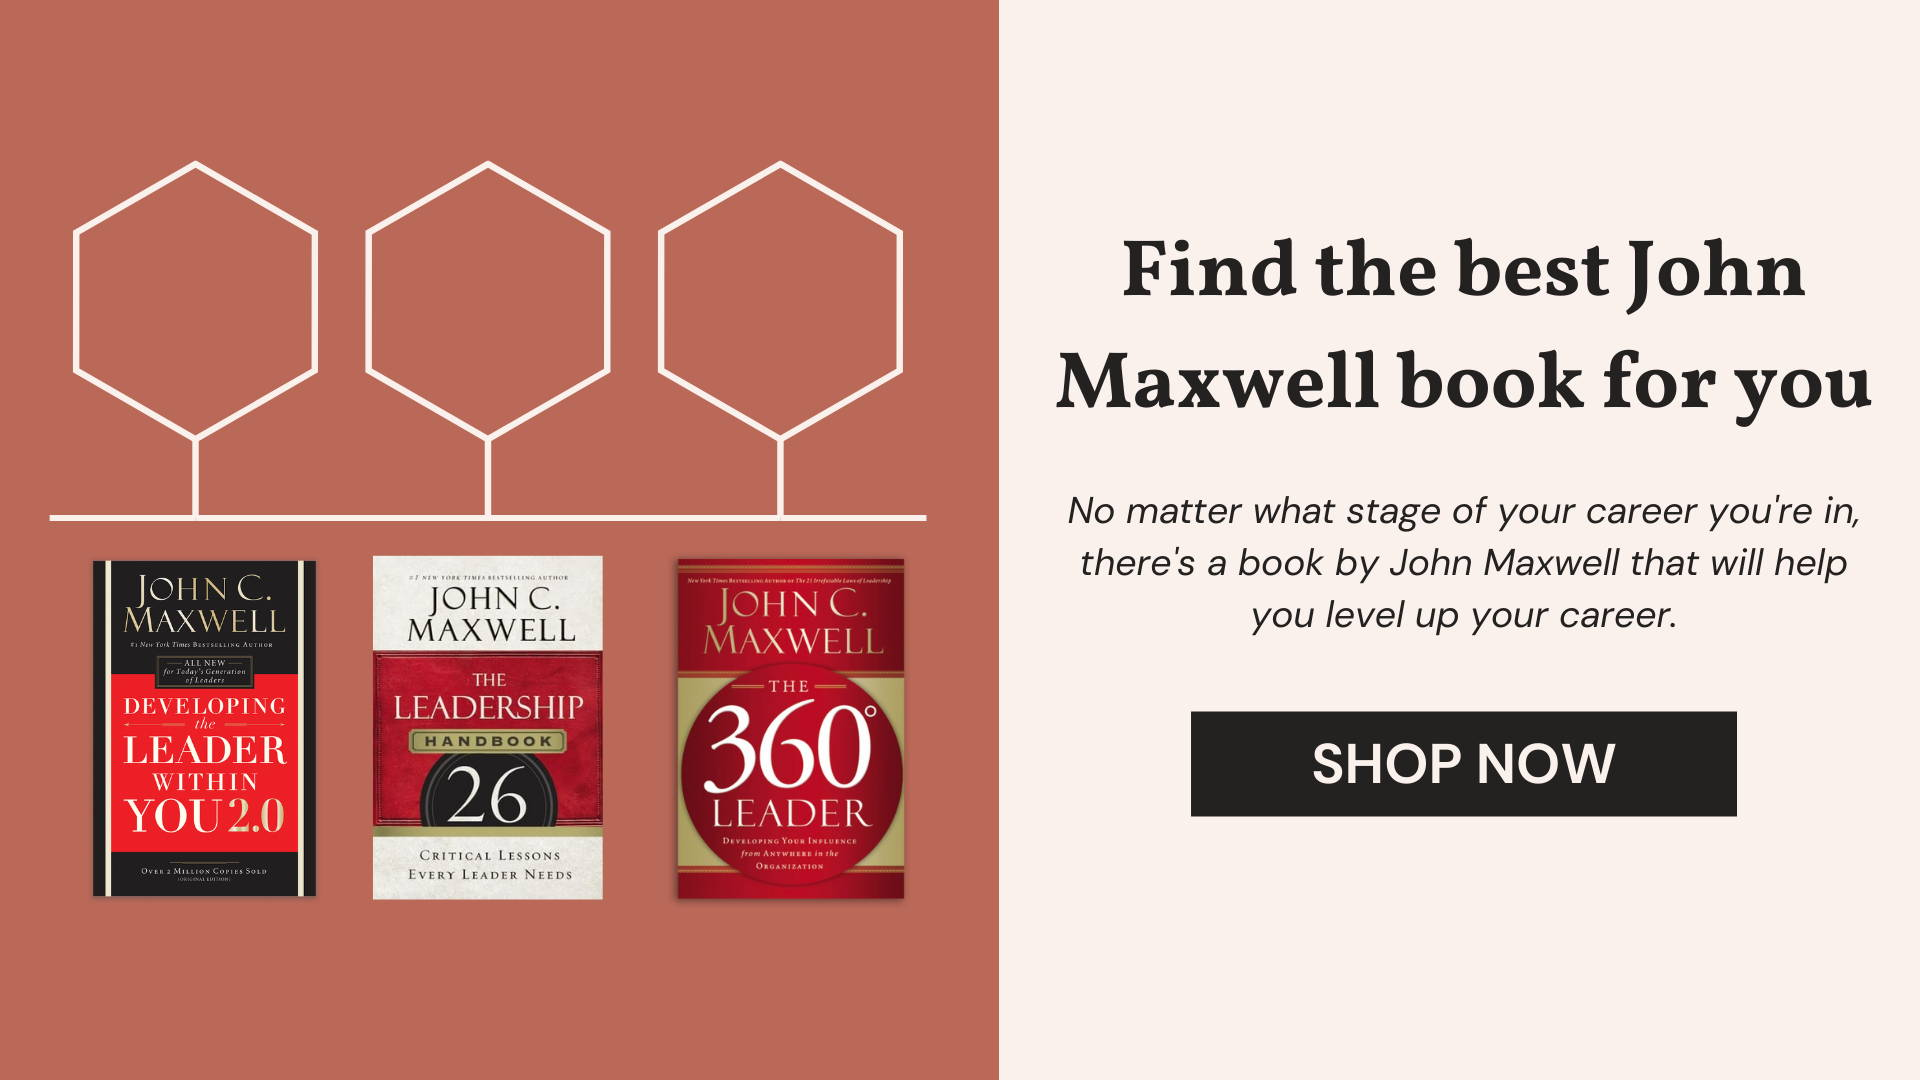 find the best John Maxwell book for you